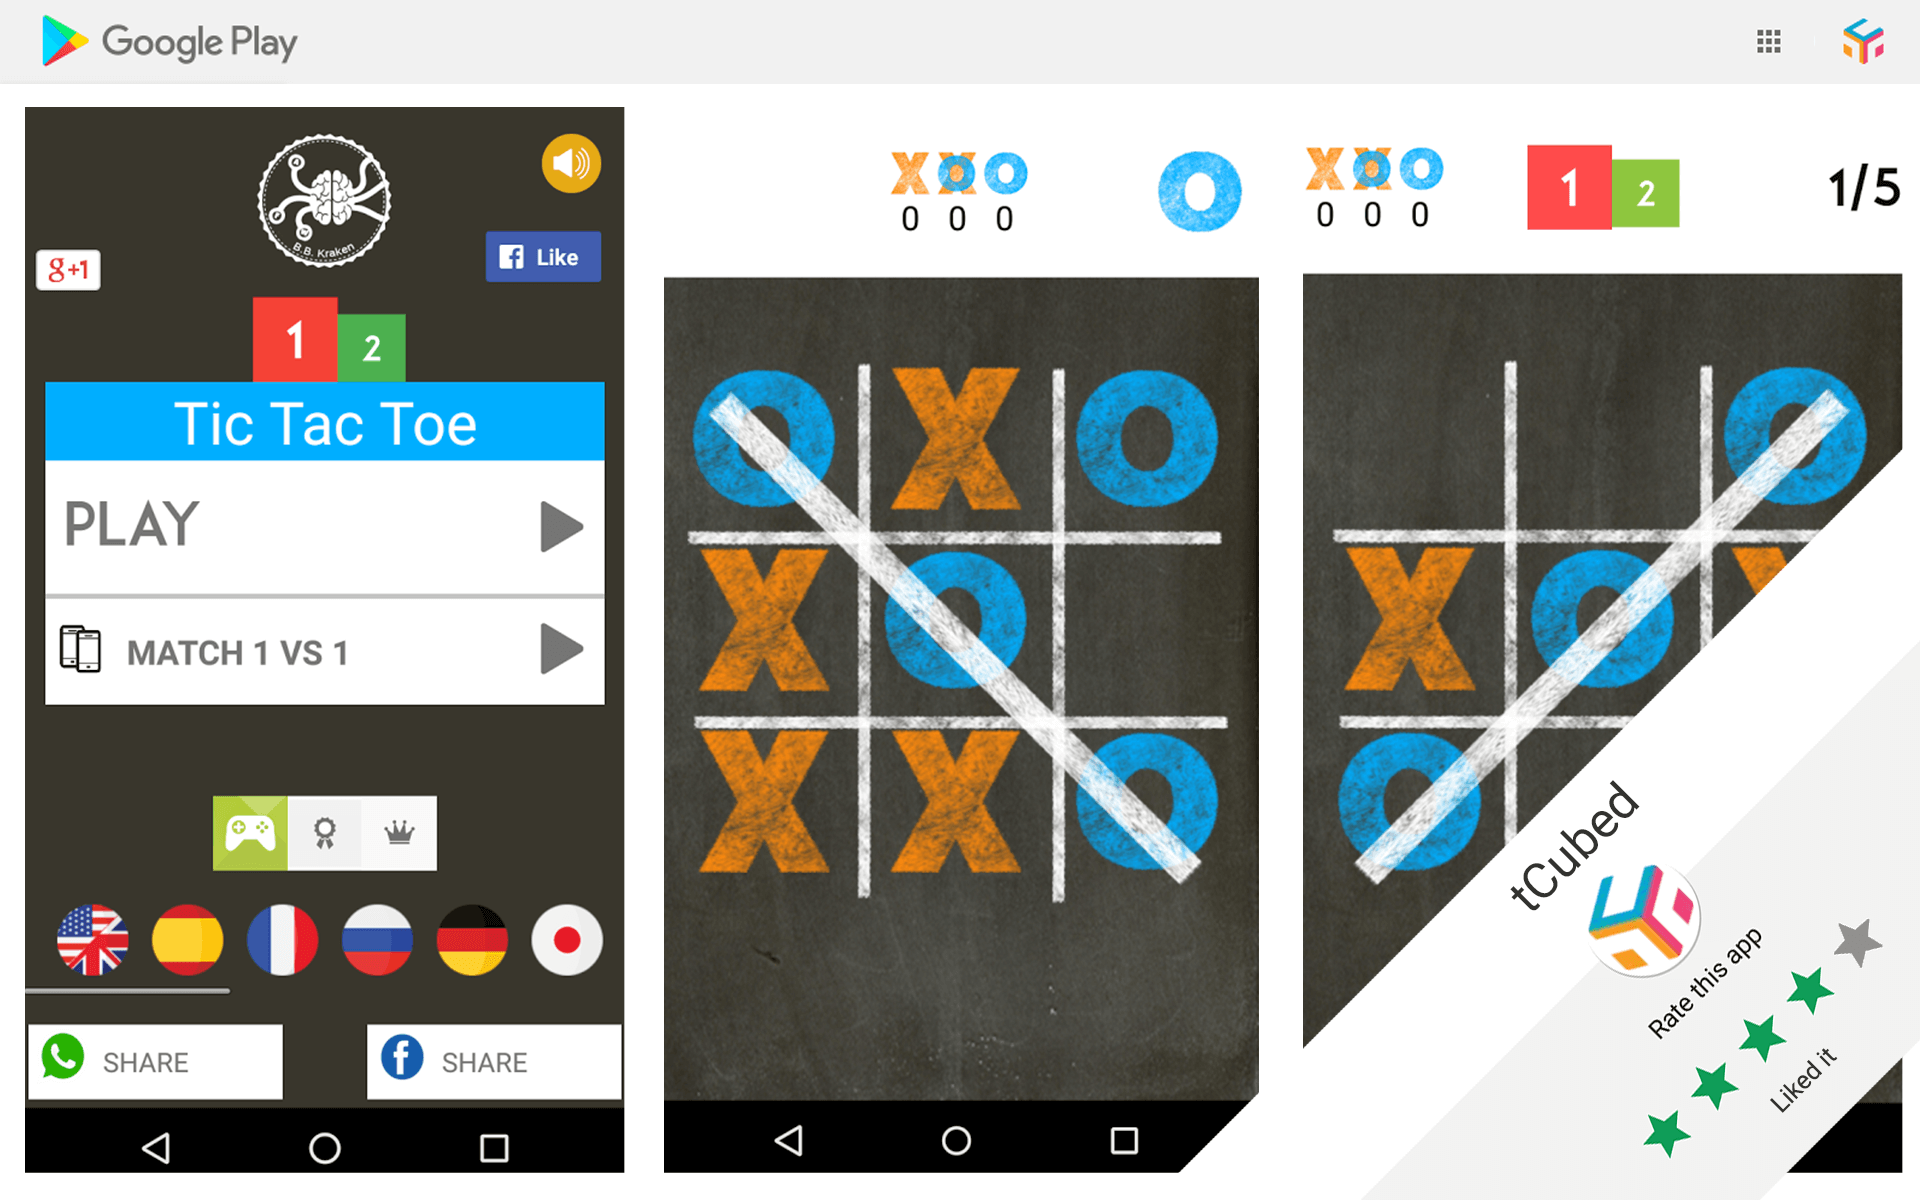 Tic Tac Toe - Play The Free Game Online